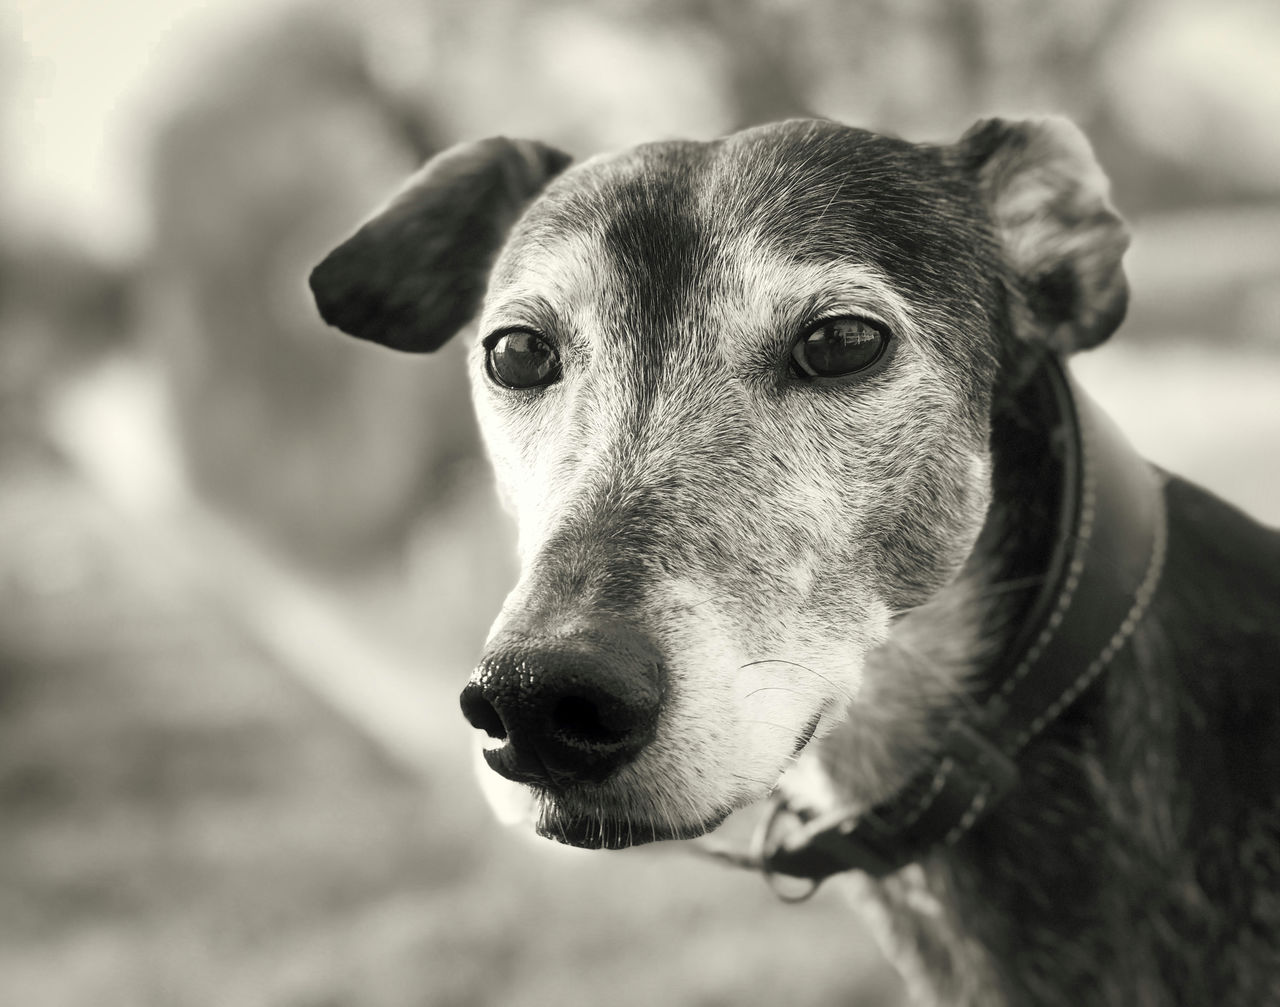 one animal, animal themes, domestic animals, mammal, animal, domestic, pets, vertebrate, dog, canine, focus on foreground, close-up, portrait, looking away, looking, animal body part, day, no people, animal head, animal mouth, snout, jack russell terrier, animal eye